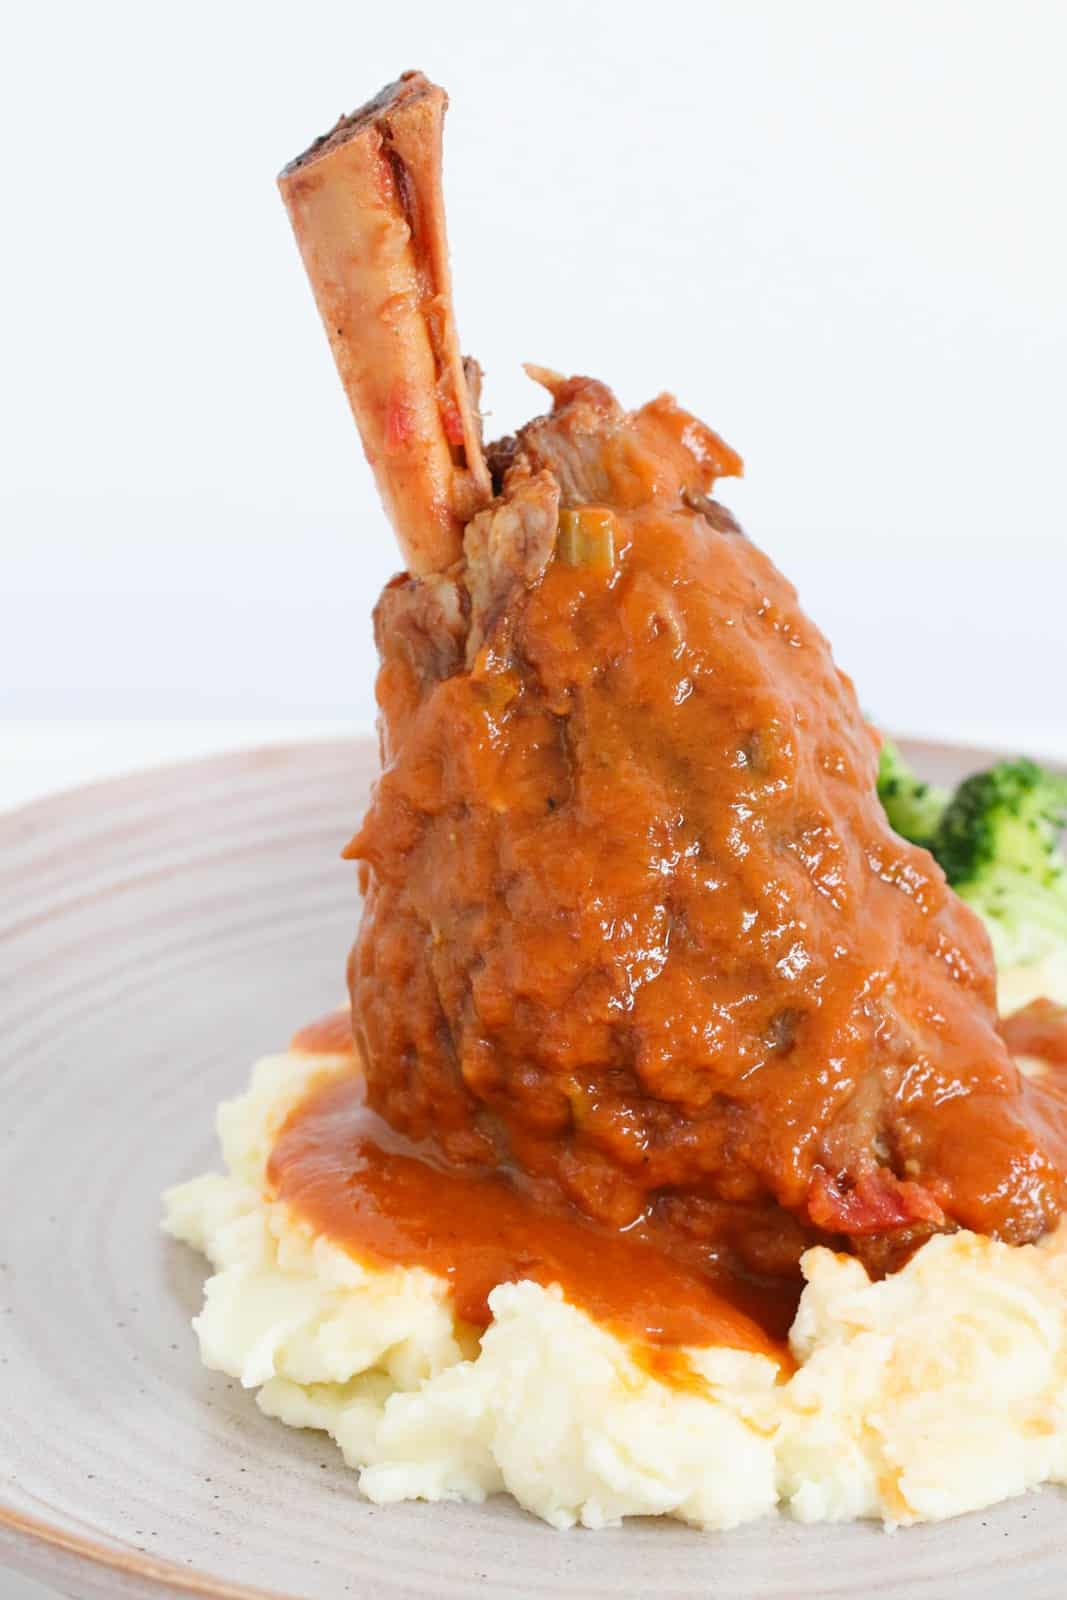 A lamb shank covered in a rich gravy and served on a bed of mash with broccoli.